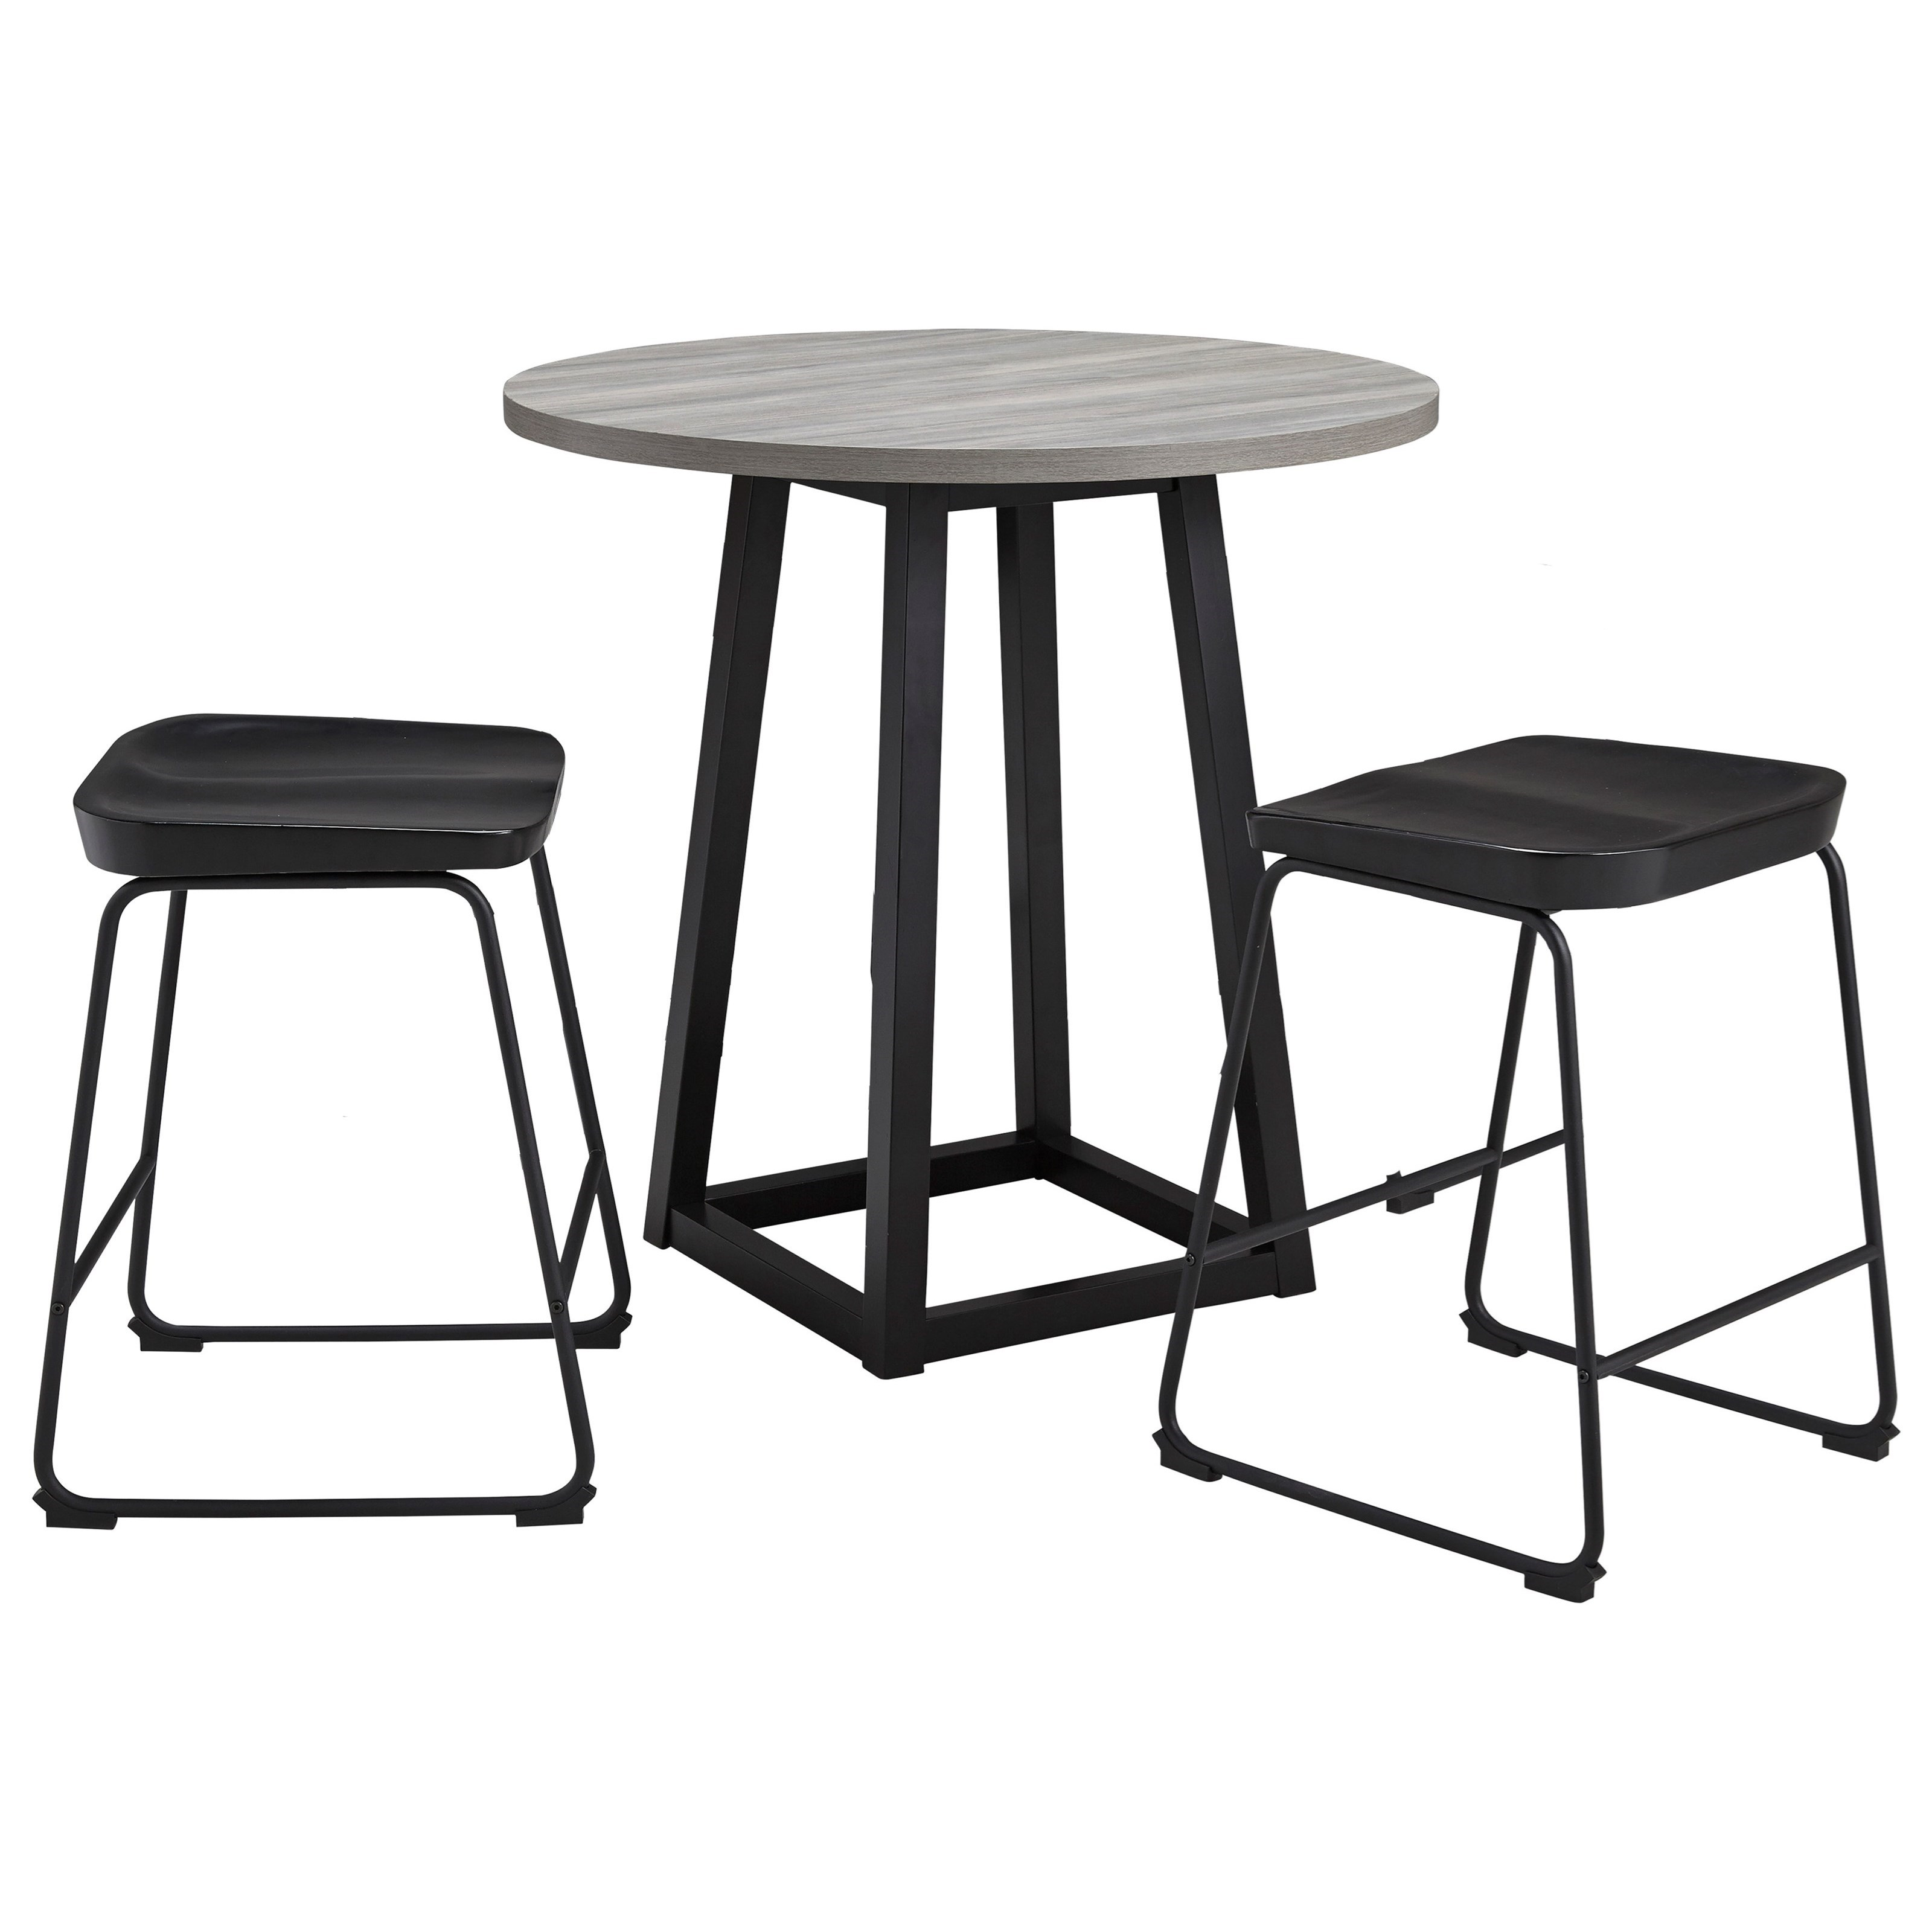 Showdell 3-Piece Counter Height Dining Table Set by Signature Design by Ashley at HomeWorld Furniture